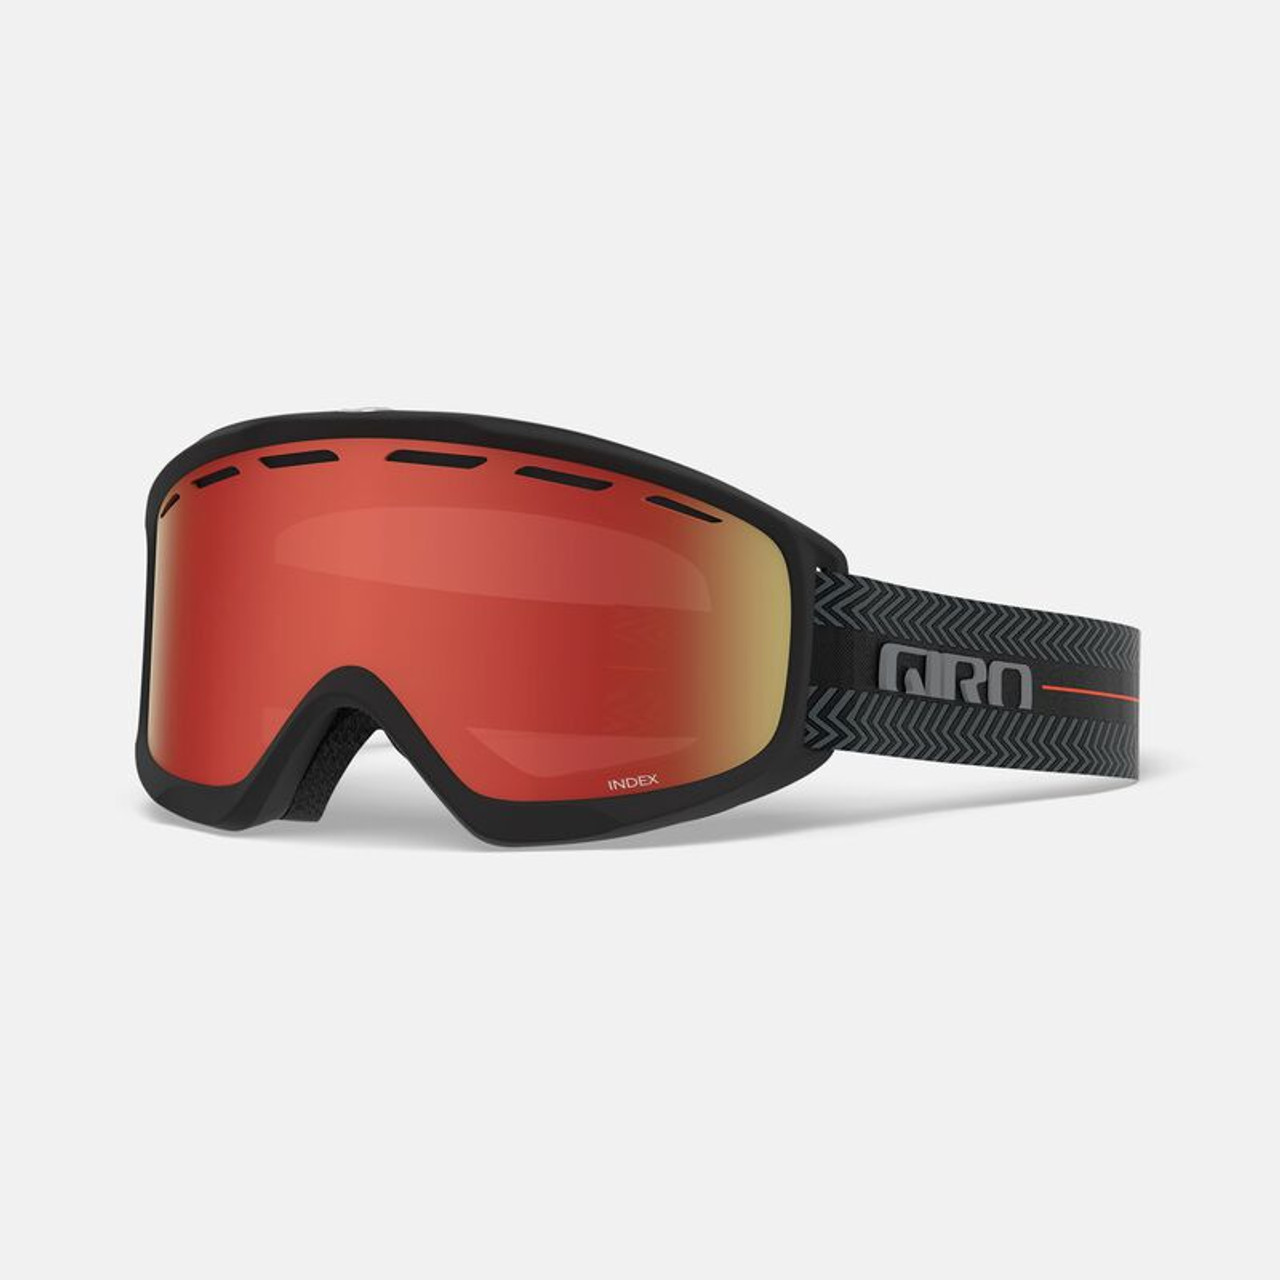 Giro Index Goggle Black Techline - Amber Scarlet